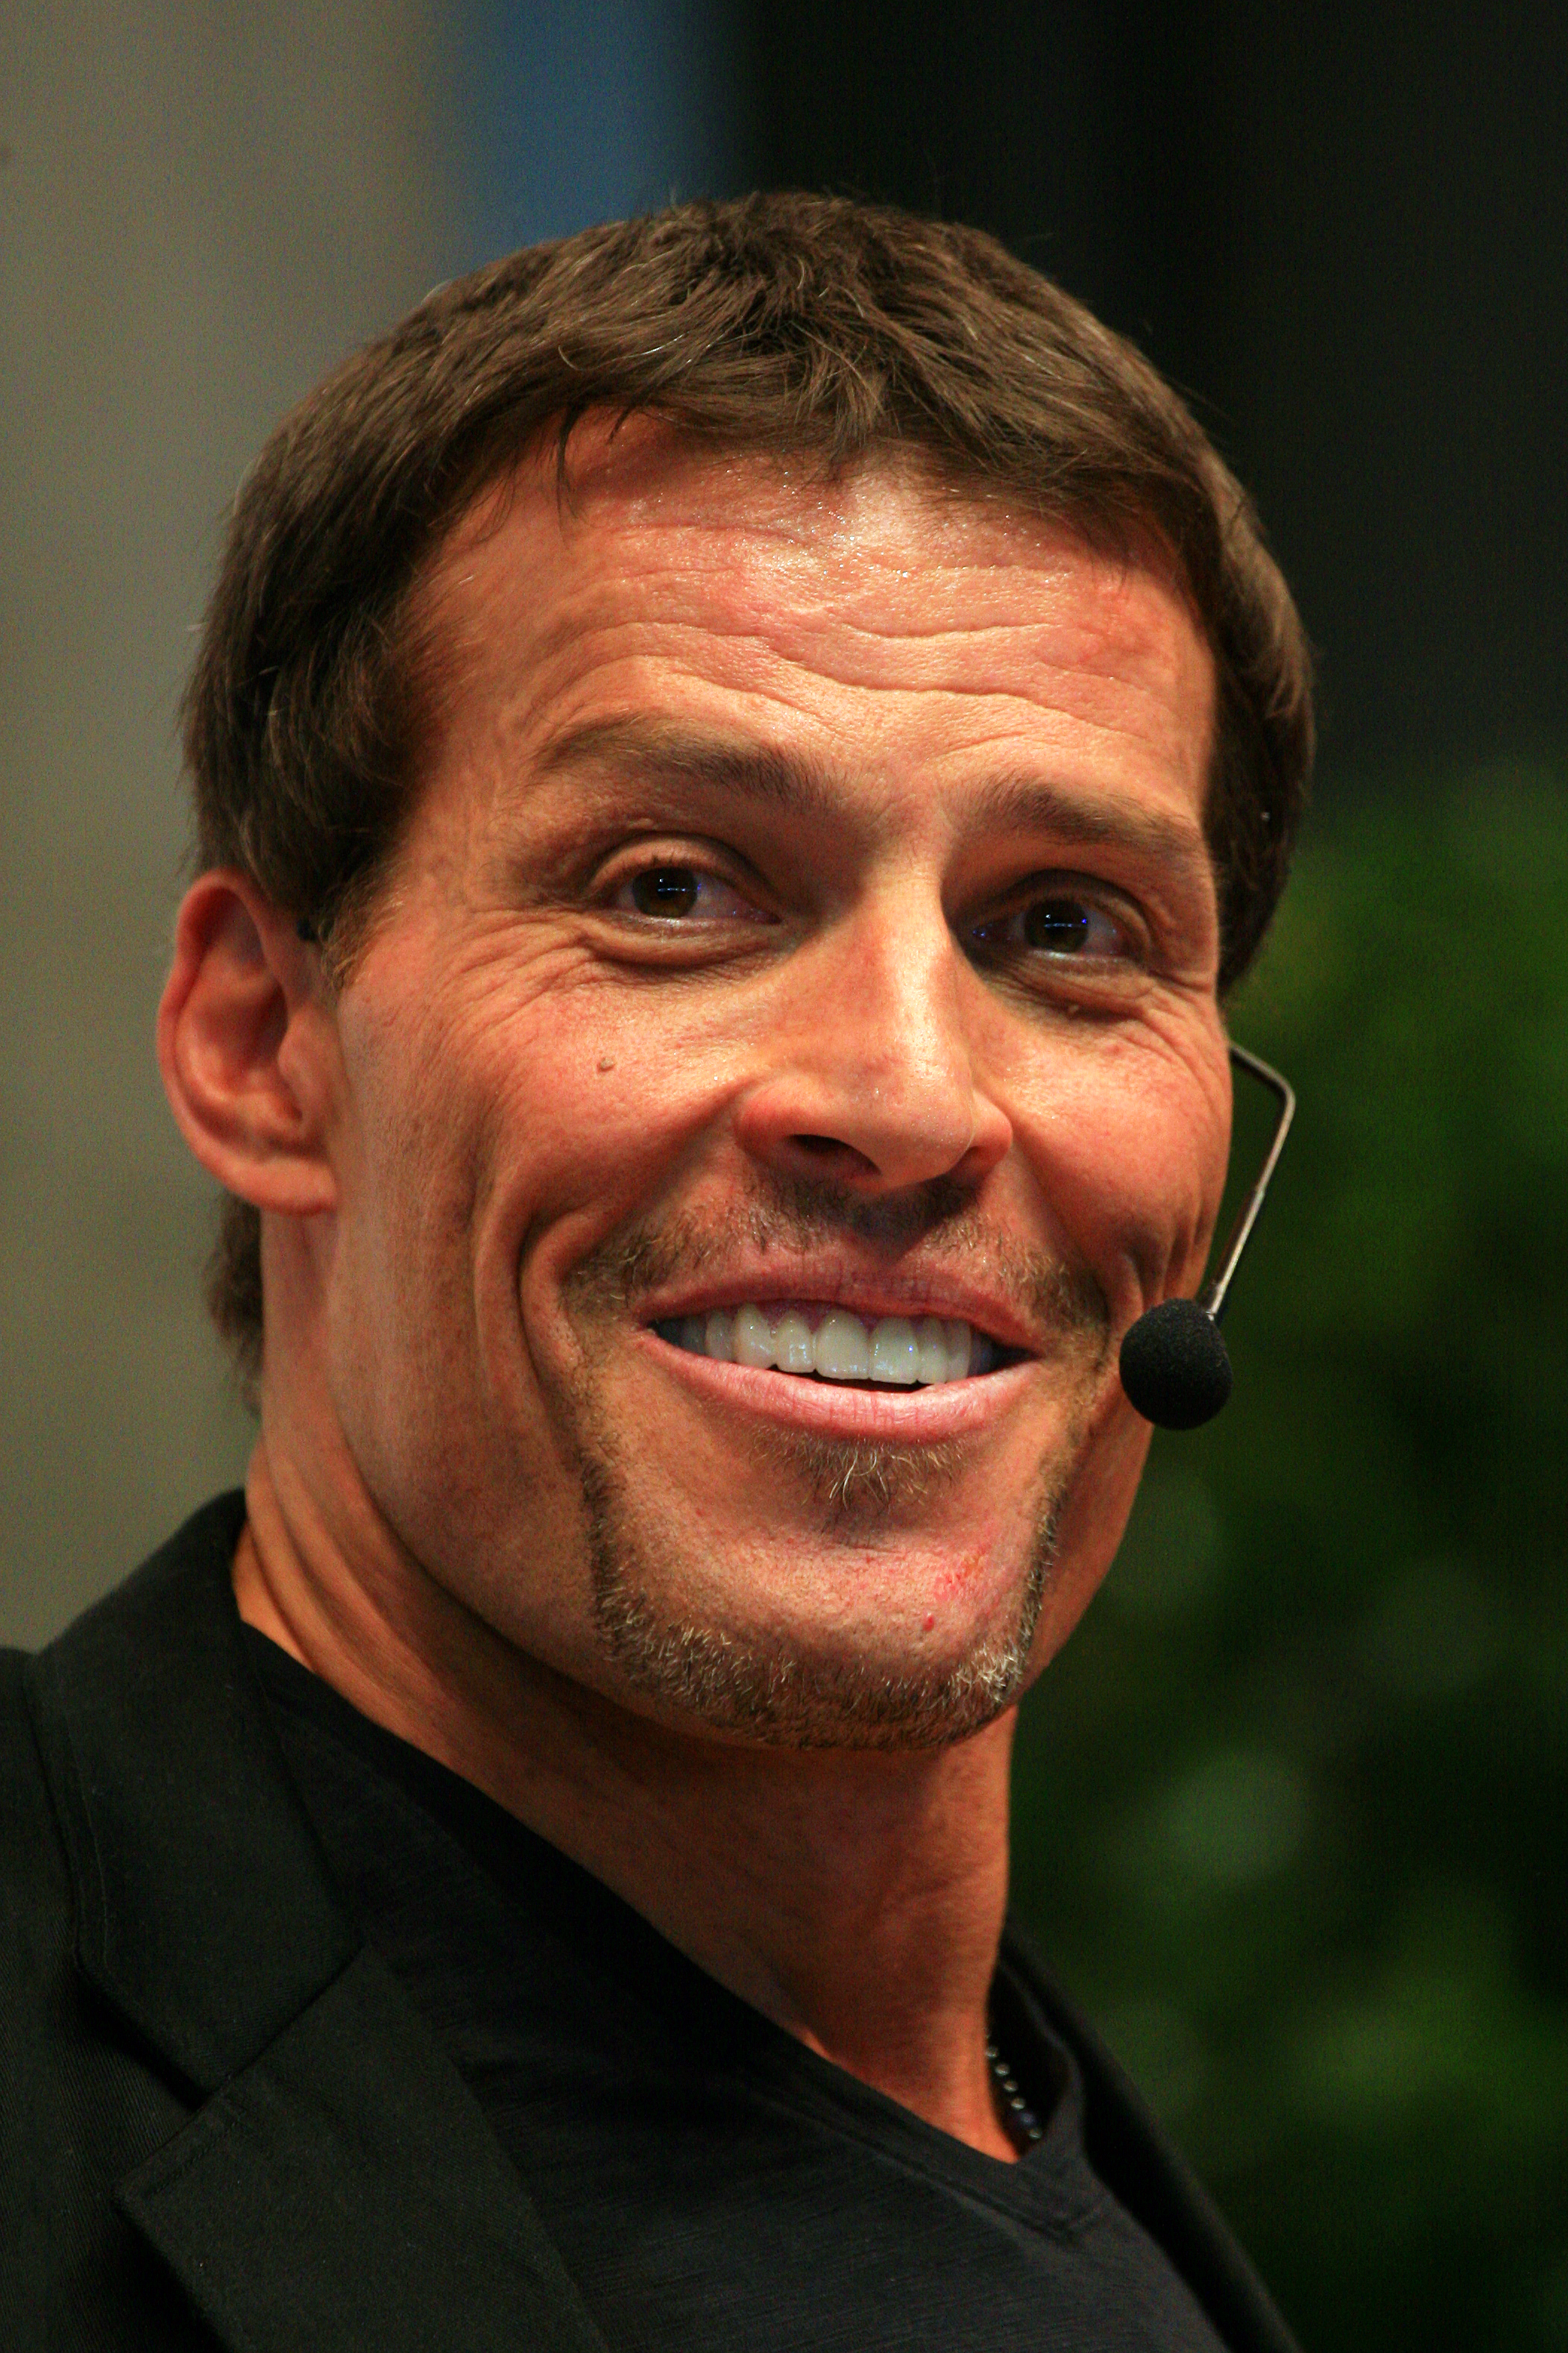 Anthony robbins music cd format